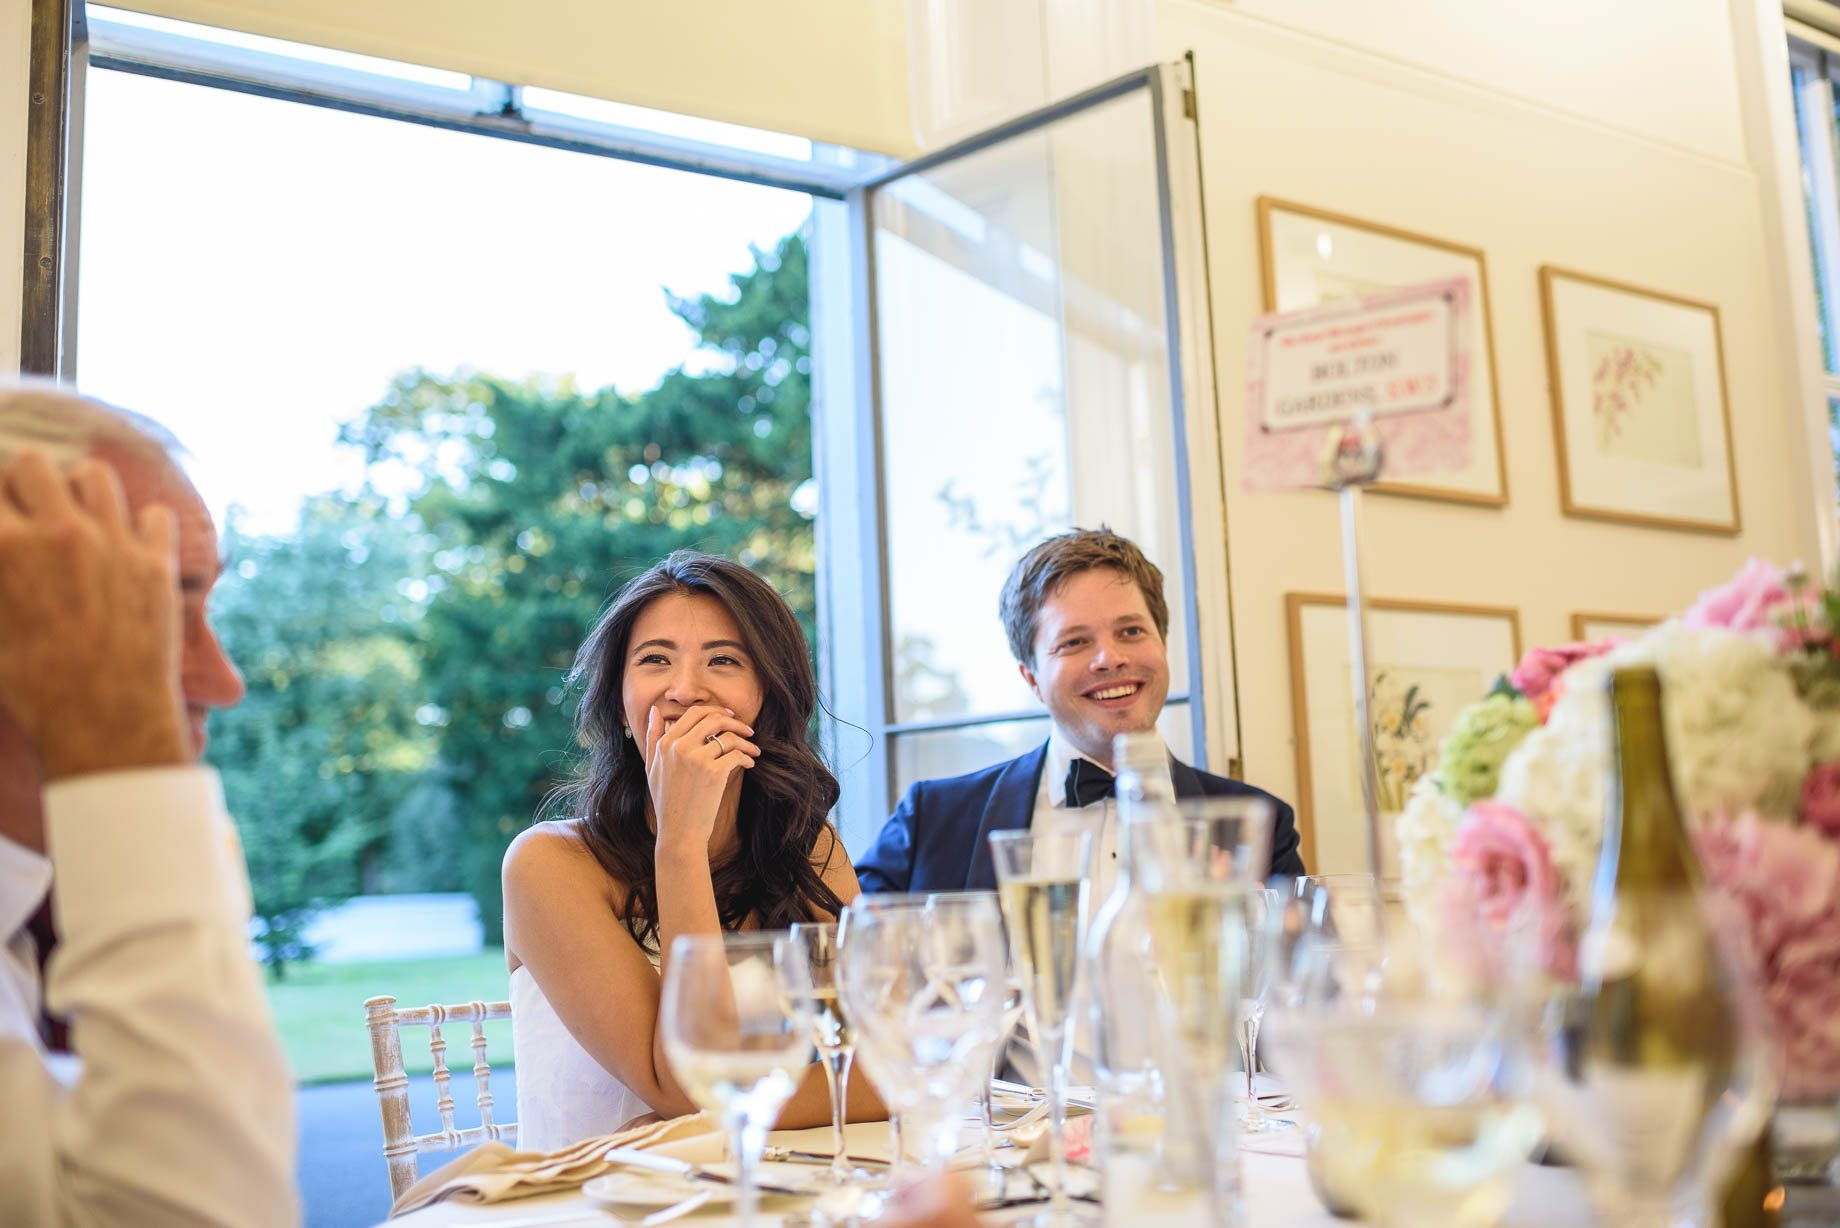 Kew Gardens wedding photography - Guy Collier Photography - Gloria and Frederik (123 of 173)